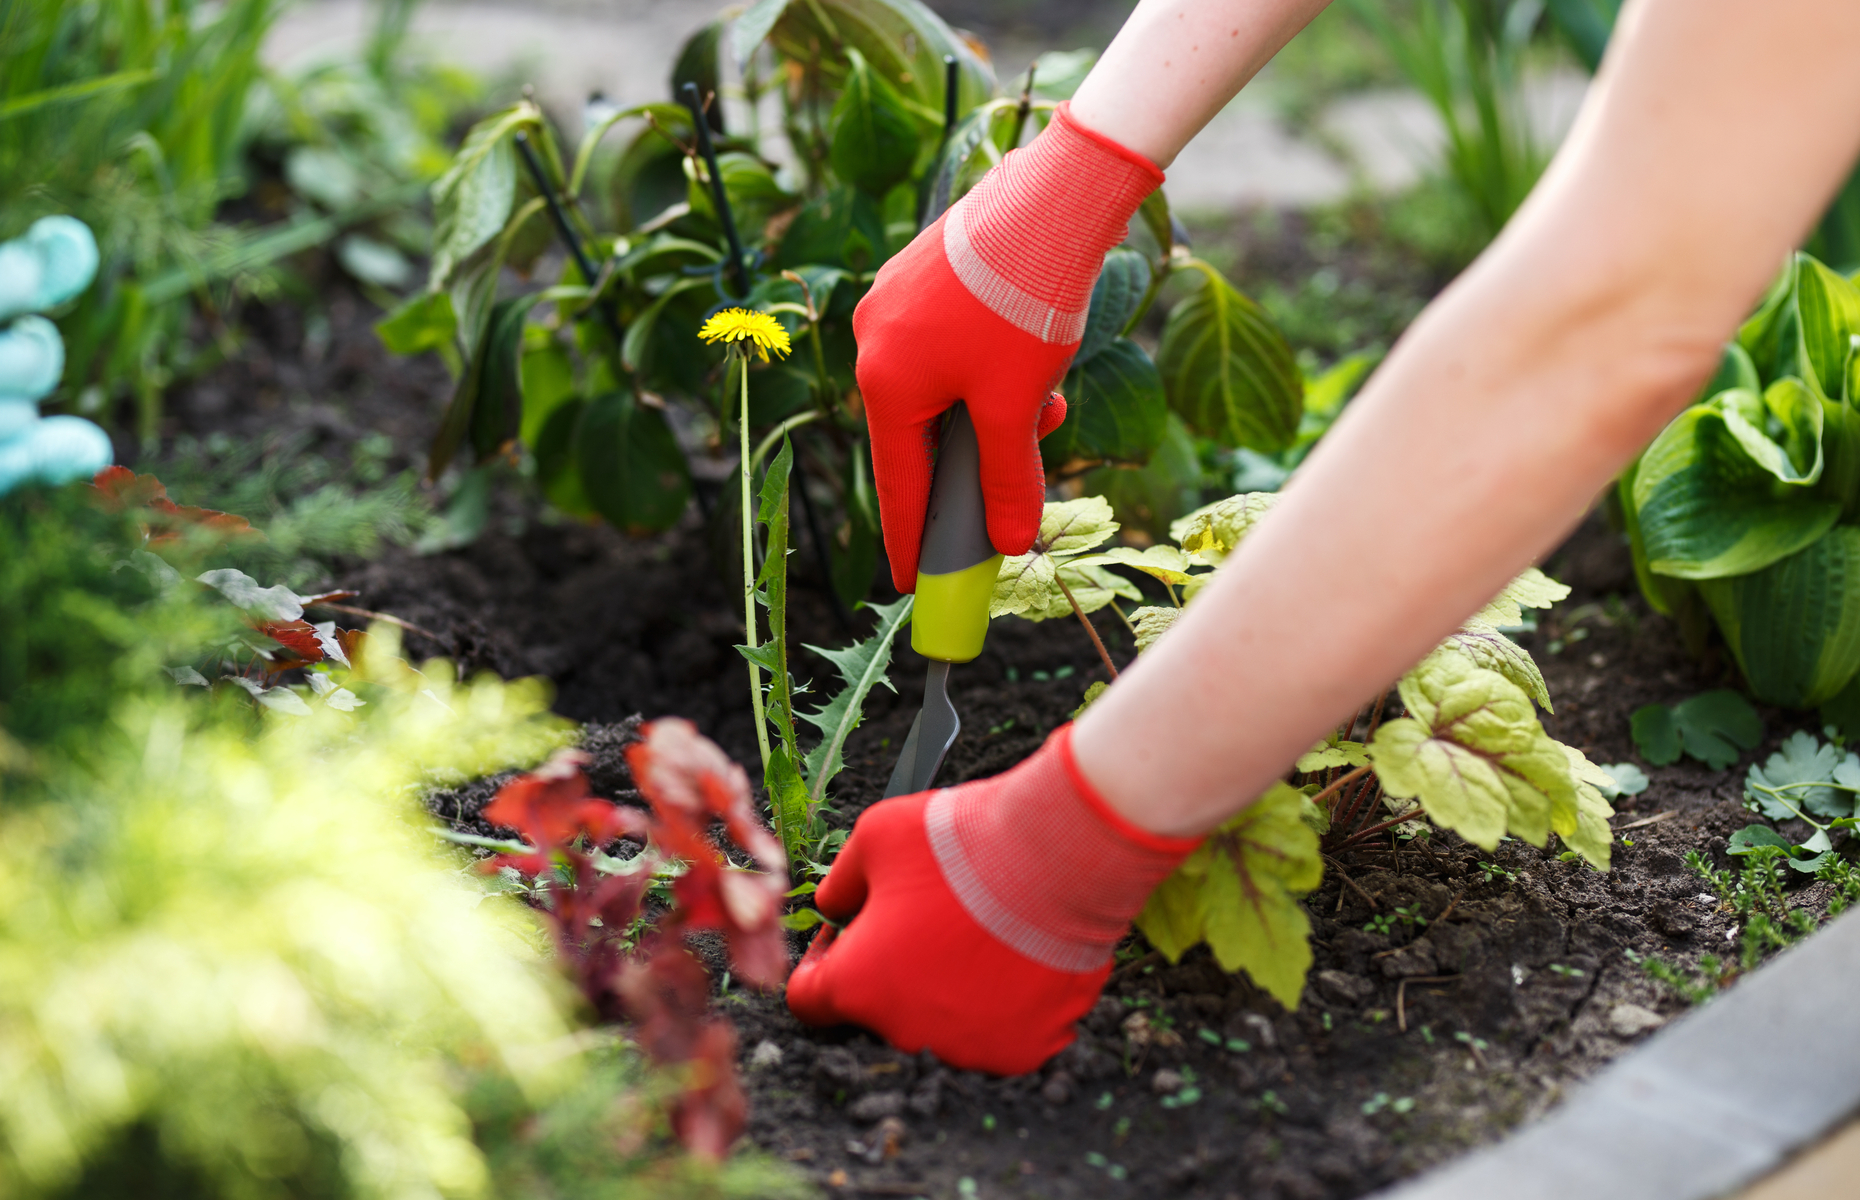 Keep on top of garden chores or you'll have to call the professionals in. Image: Kostenko Maxim / Shutterstock